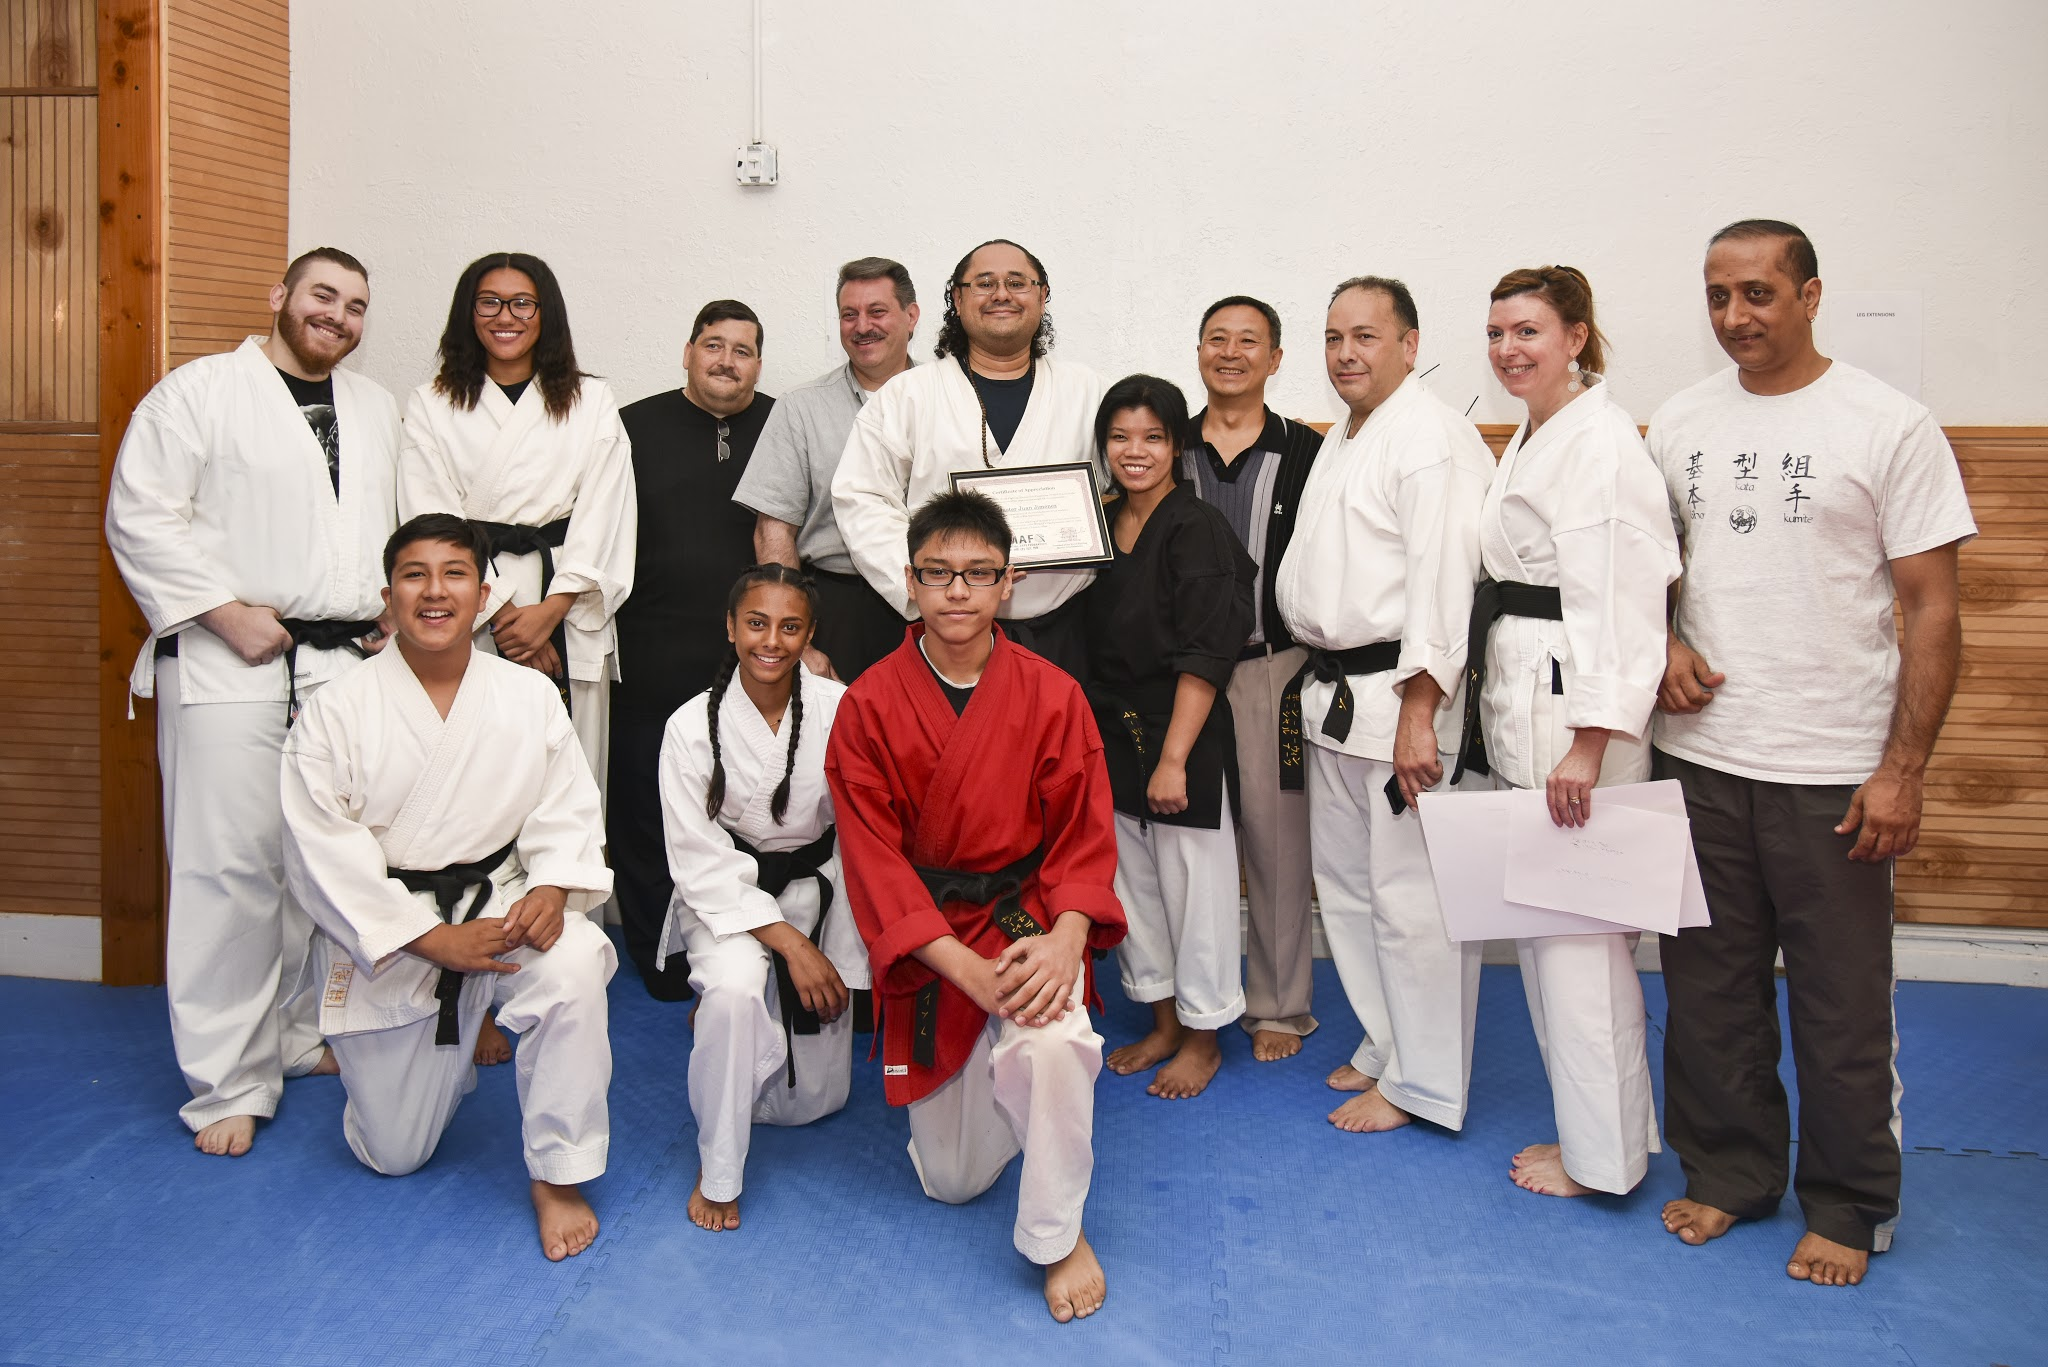 The WFMAF's President Attended the 10th Year Anniversary Ceremony for the Establishment of Born-2-Win Martial Arts under Sensei Jimenez